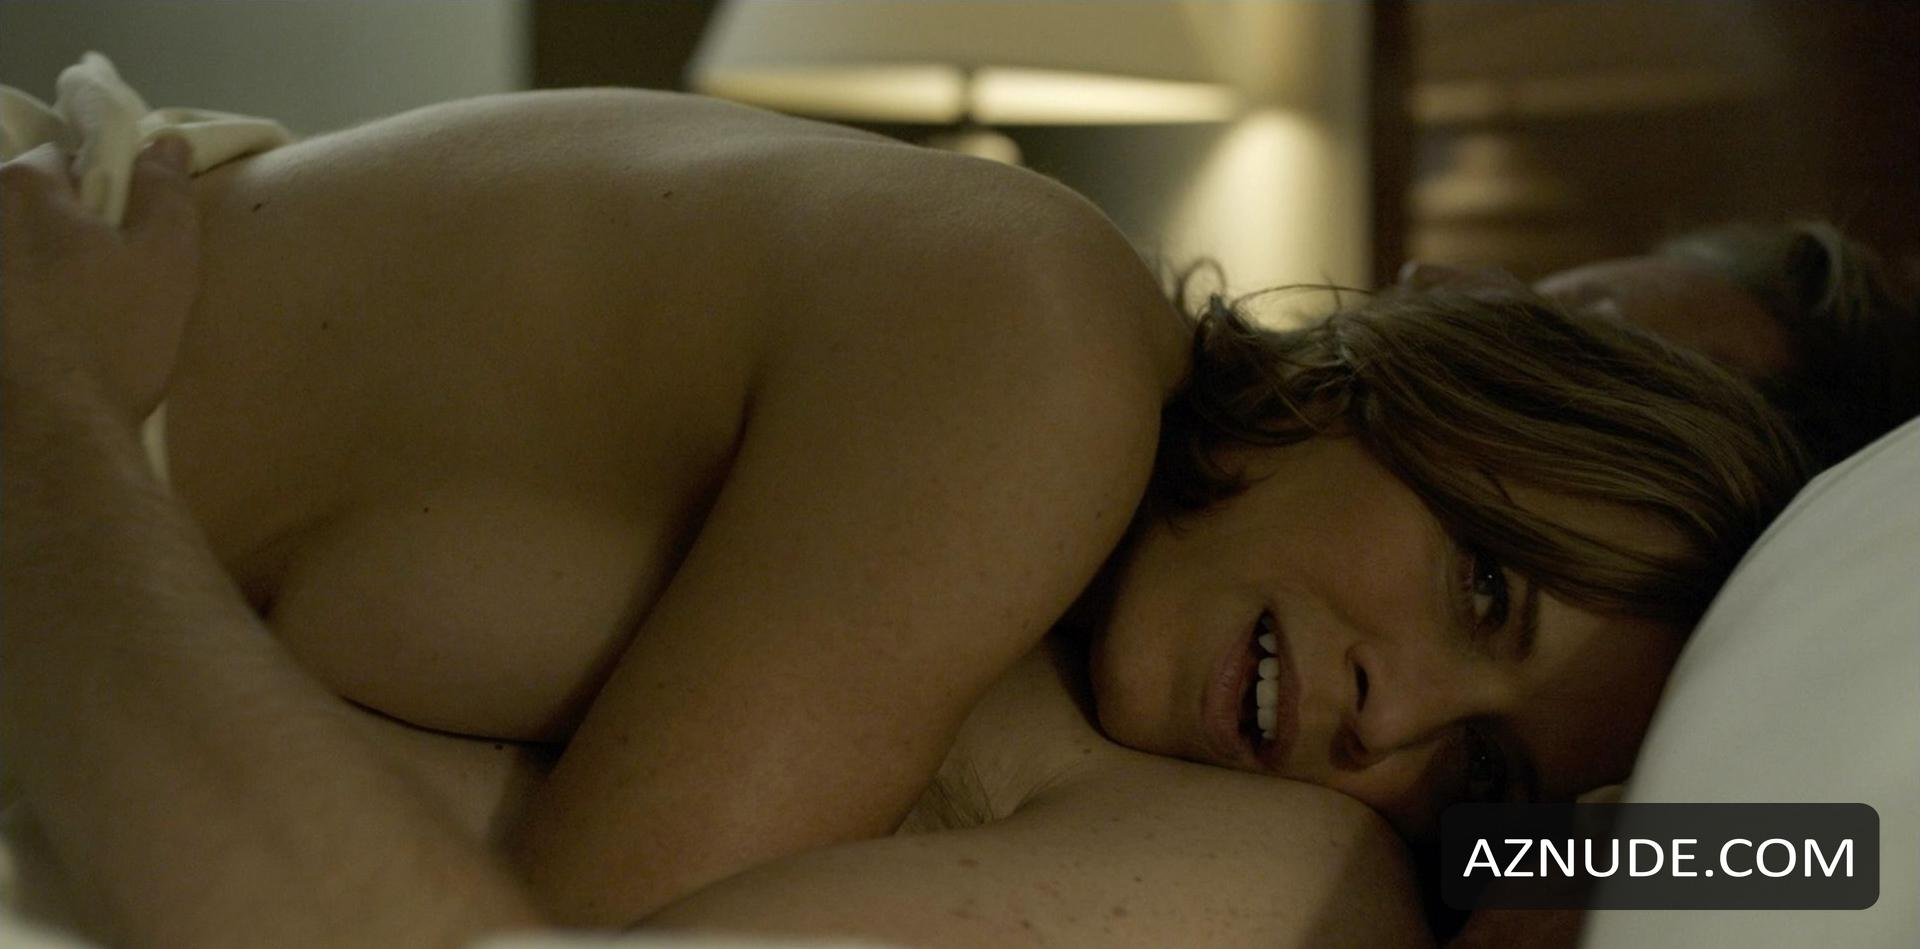 Naked pics of kim dickens